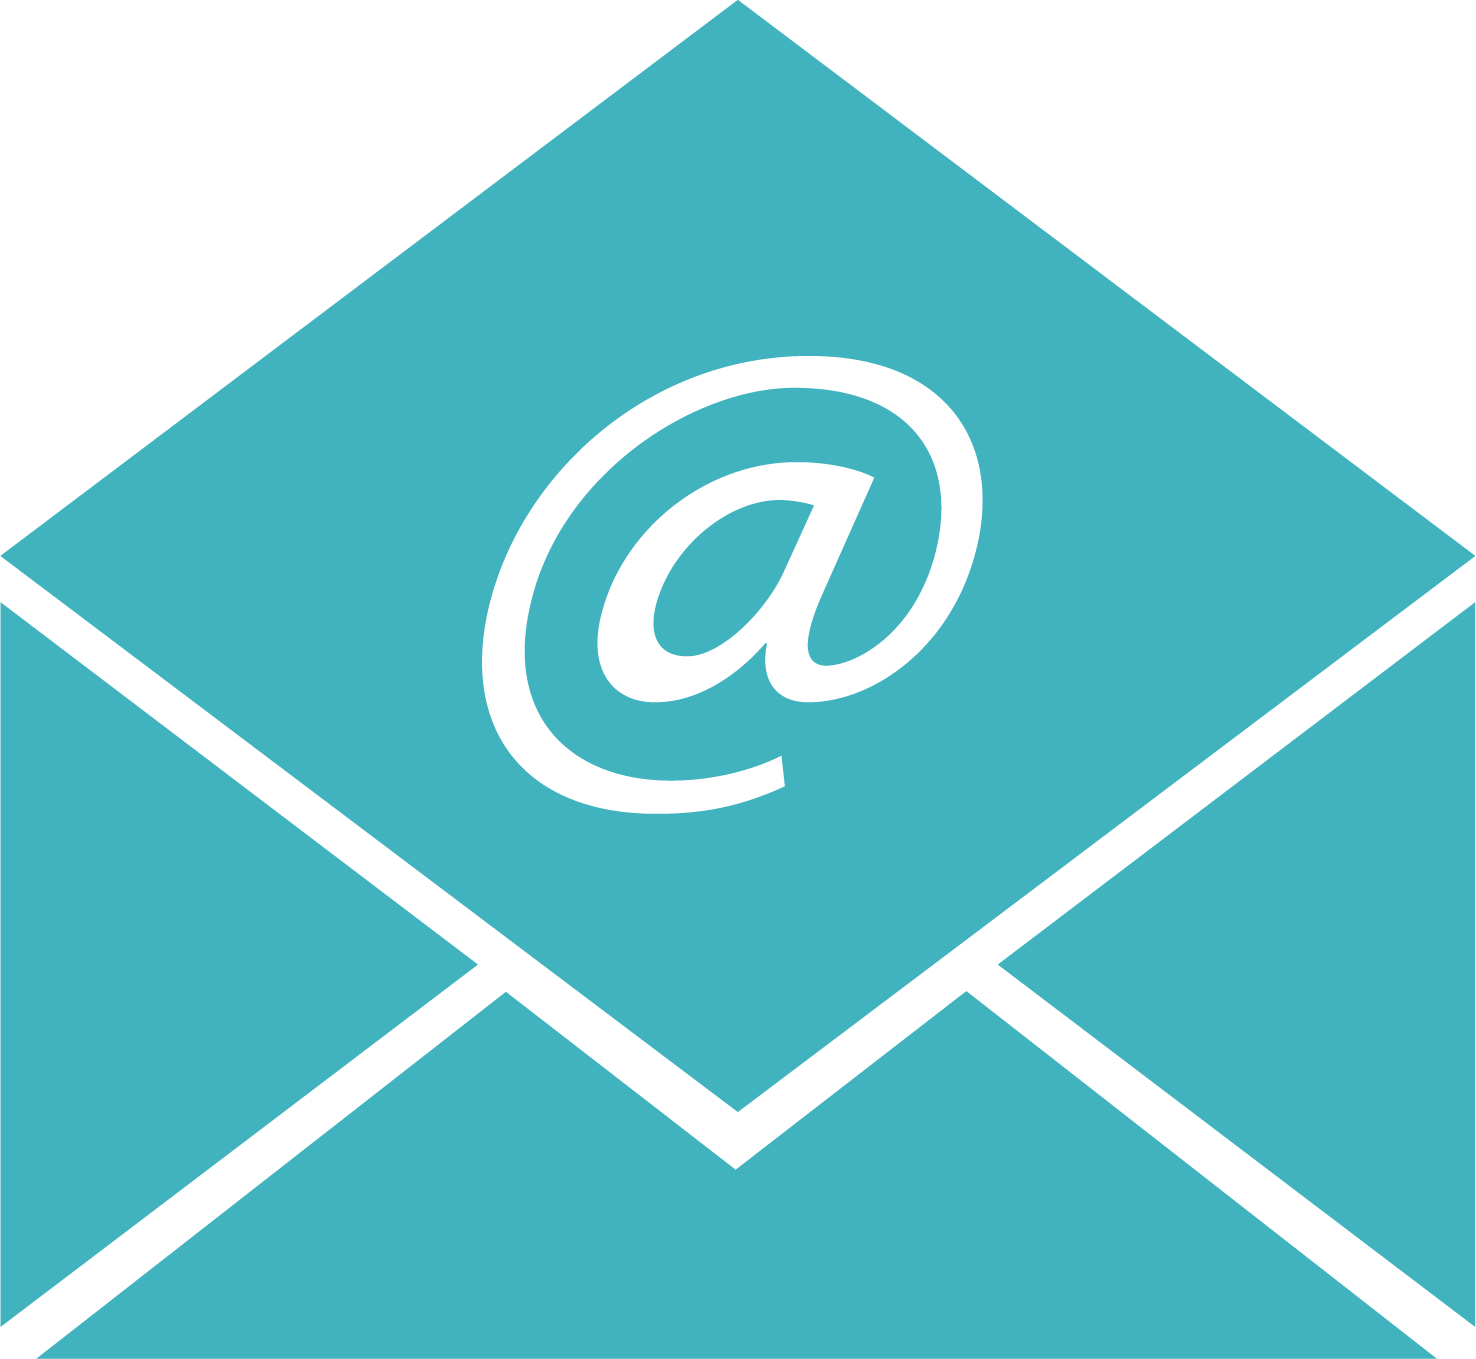 Png images marketing only. Email clipart blue email